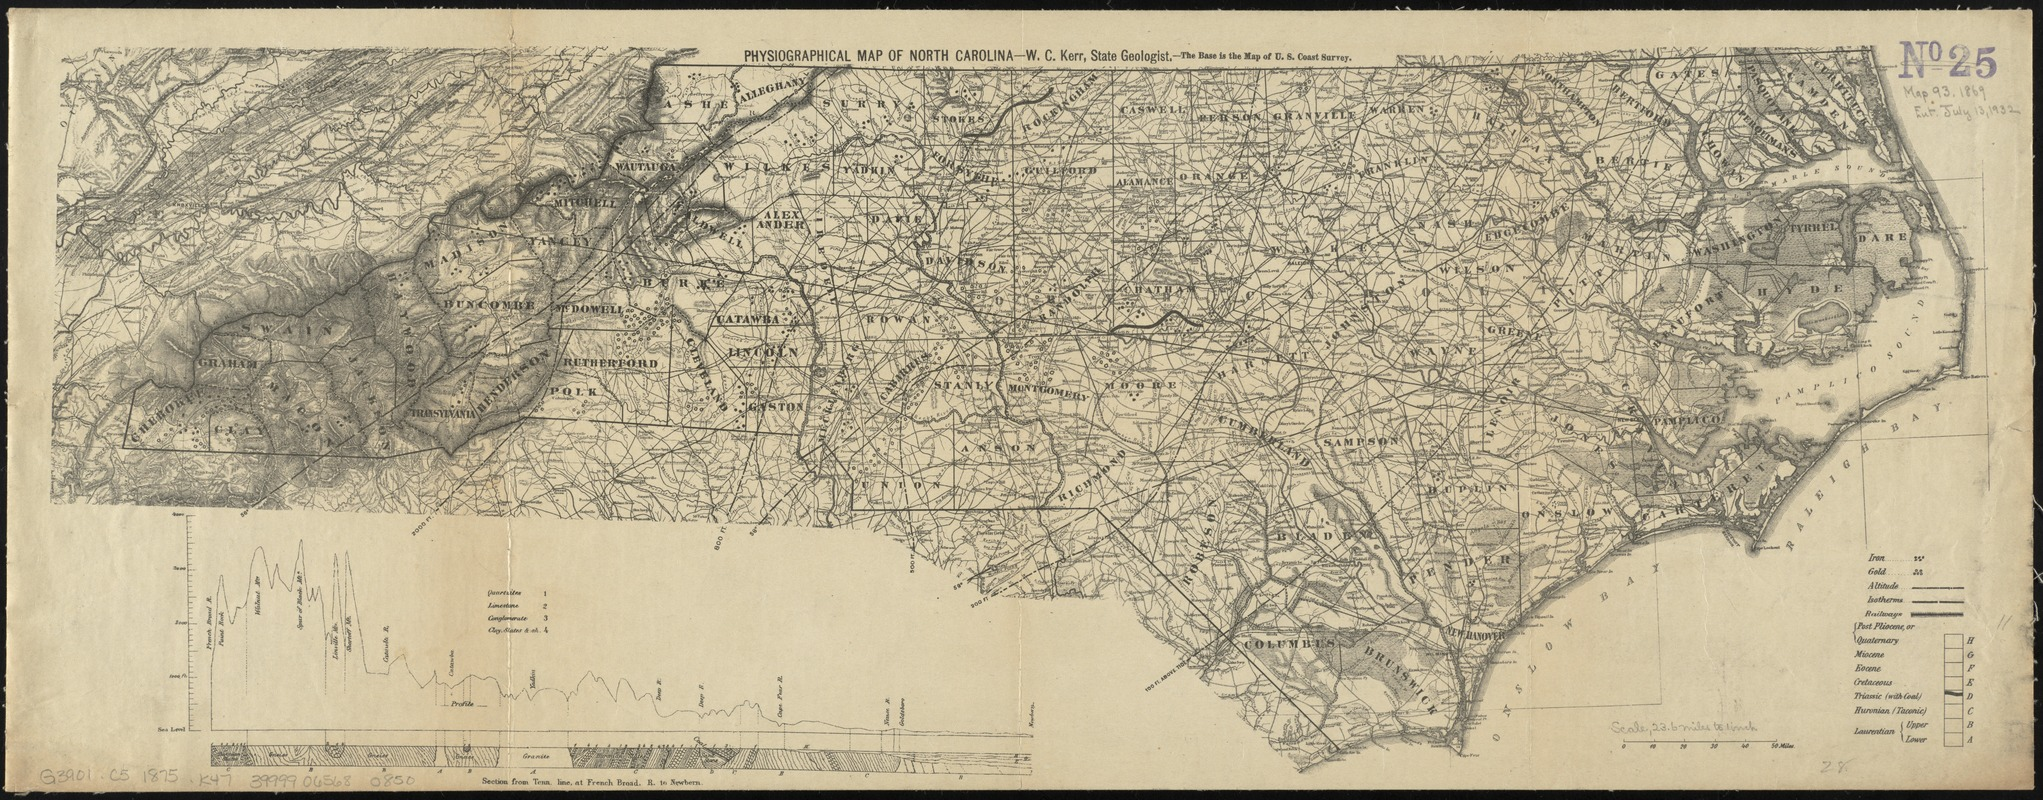 Physiographical map of North Carolina